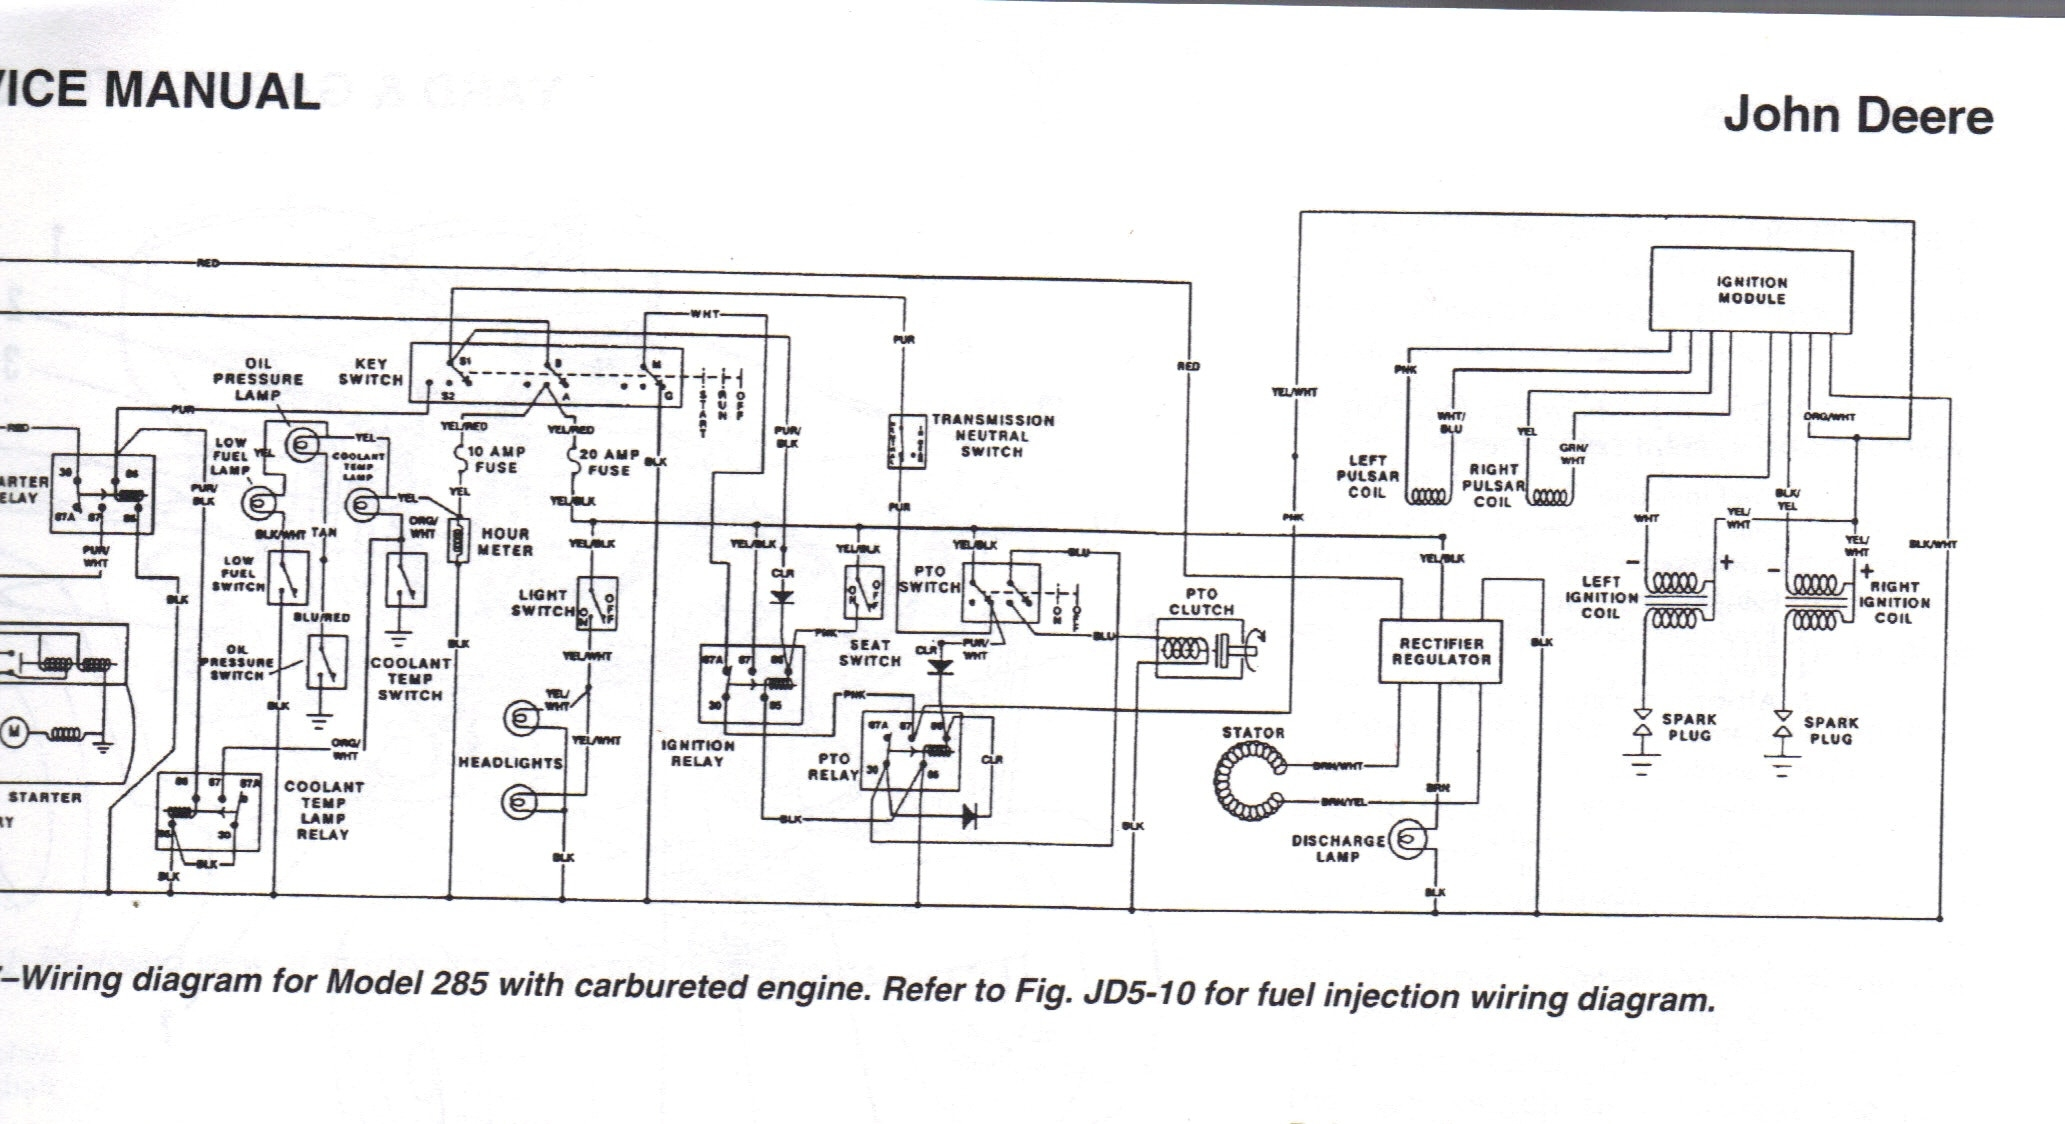 John Deere Gator Te Wiring Diagram Image Tx The